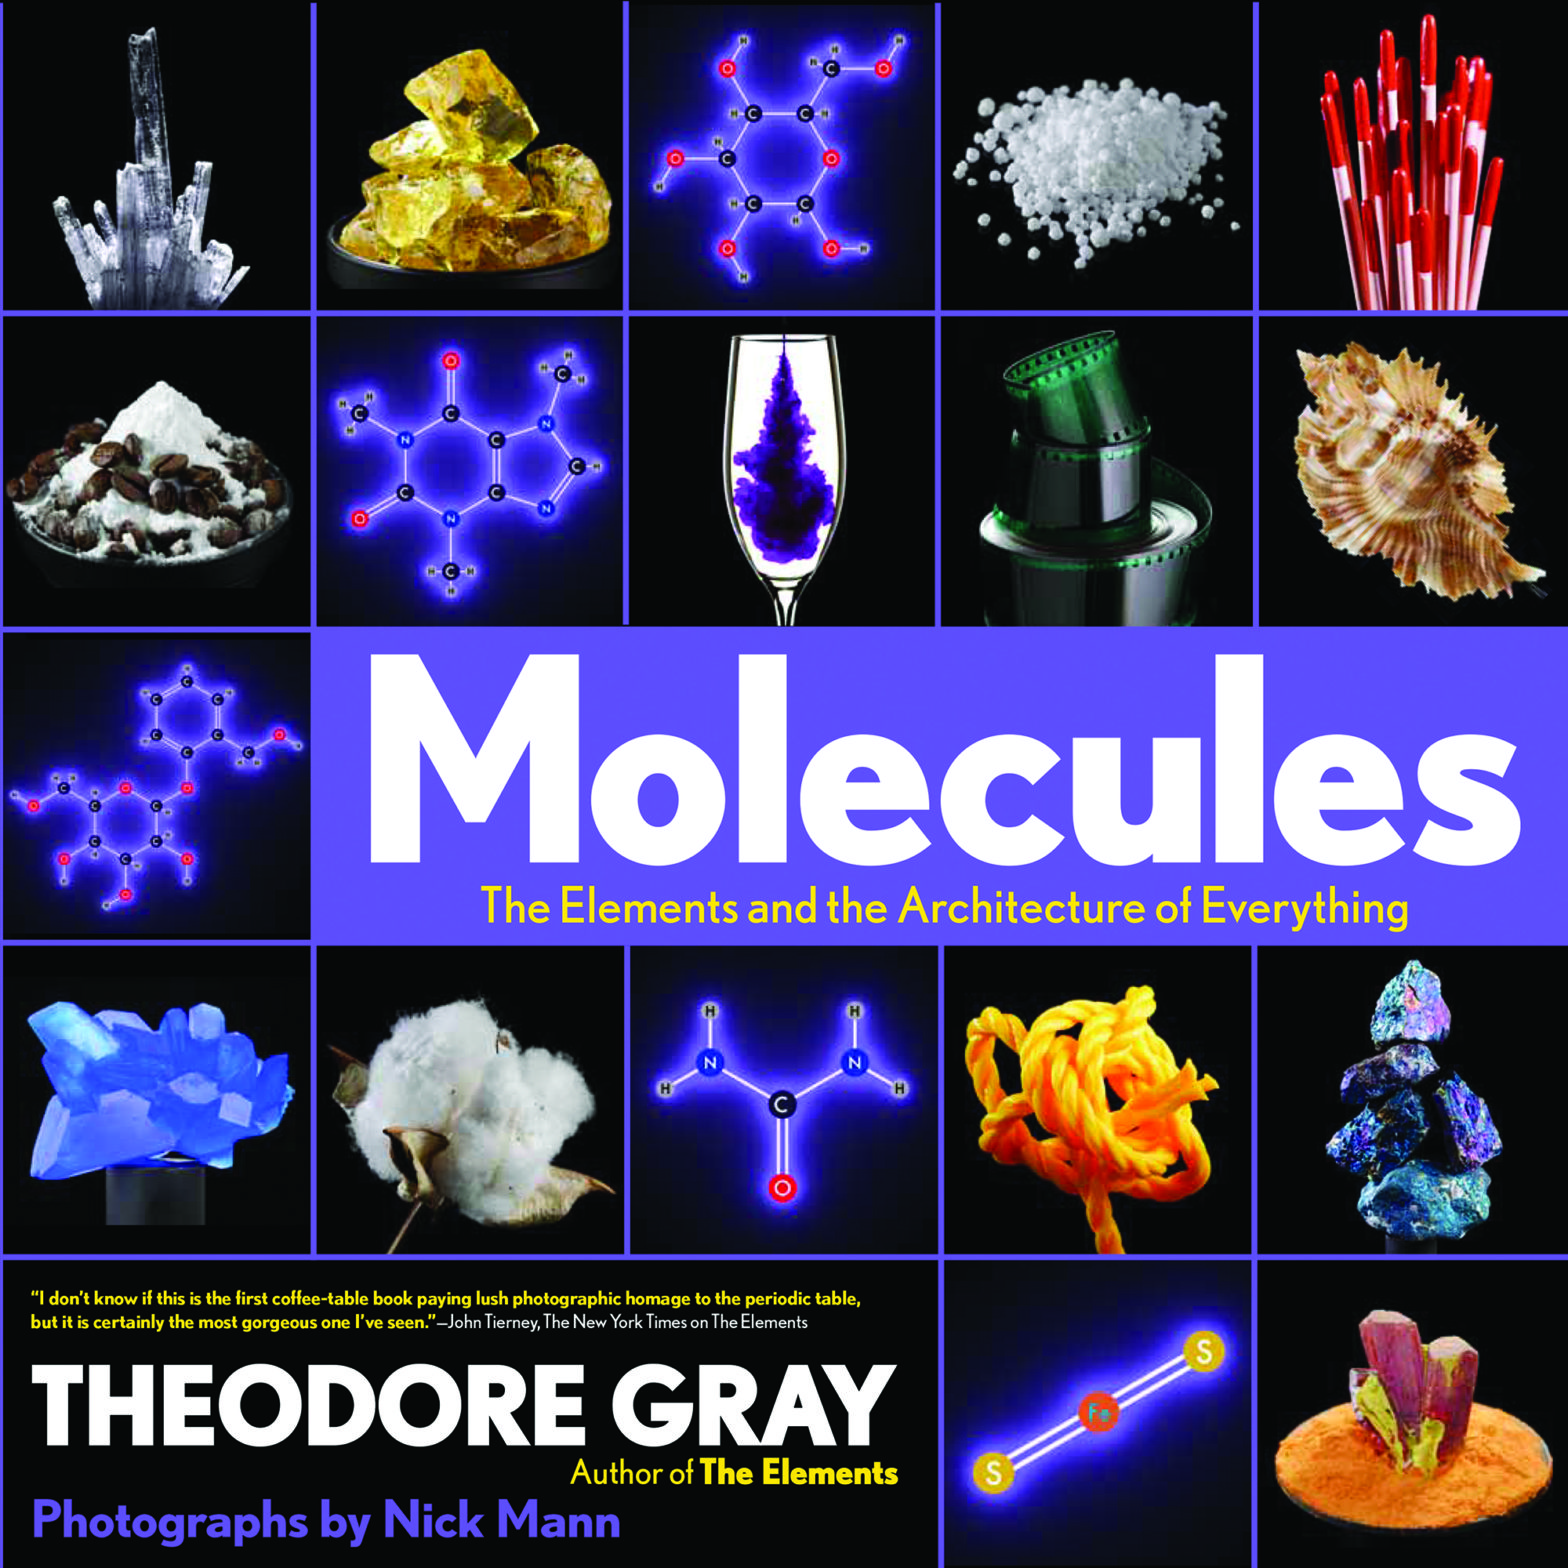 Book: Molecules: The Elements and the Architecture of Everything